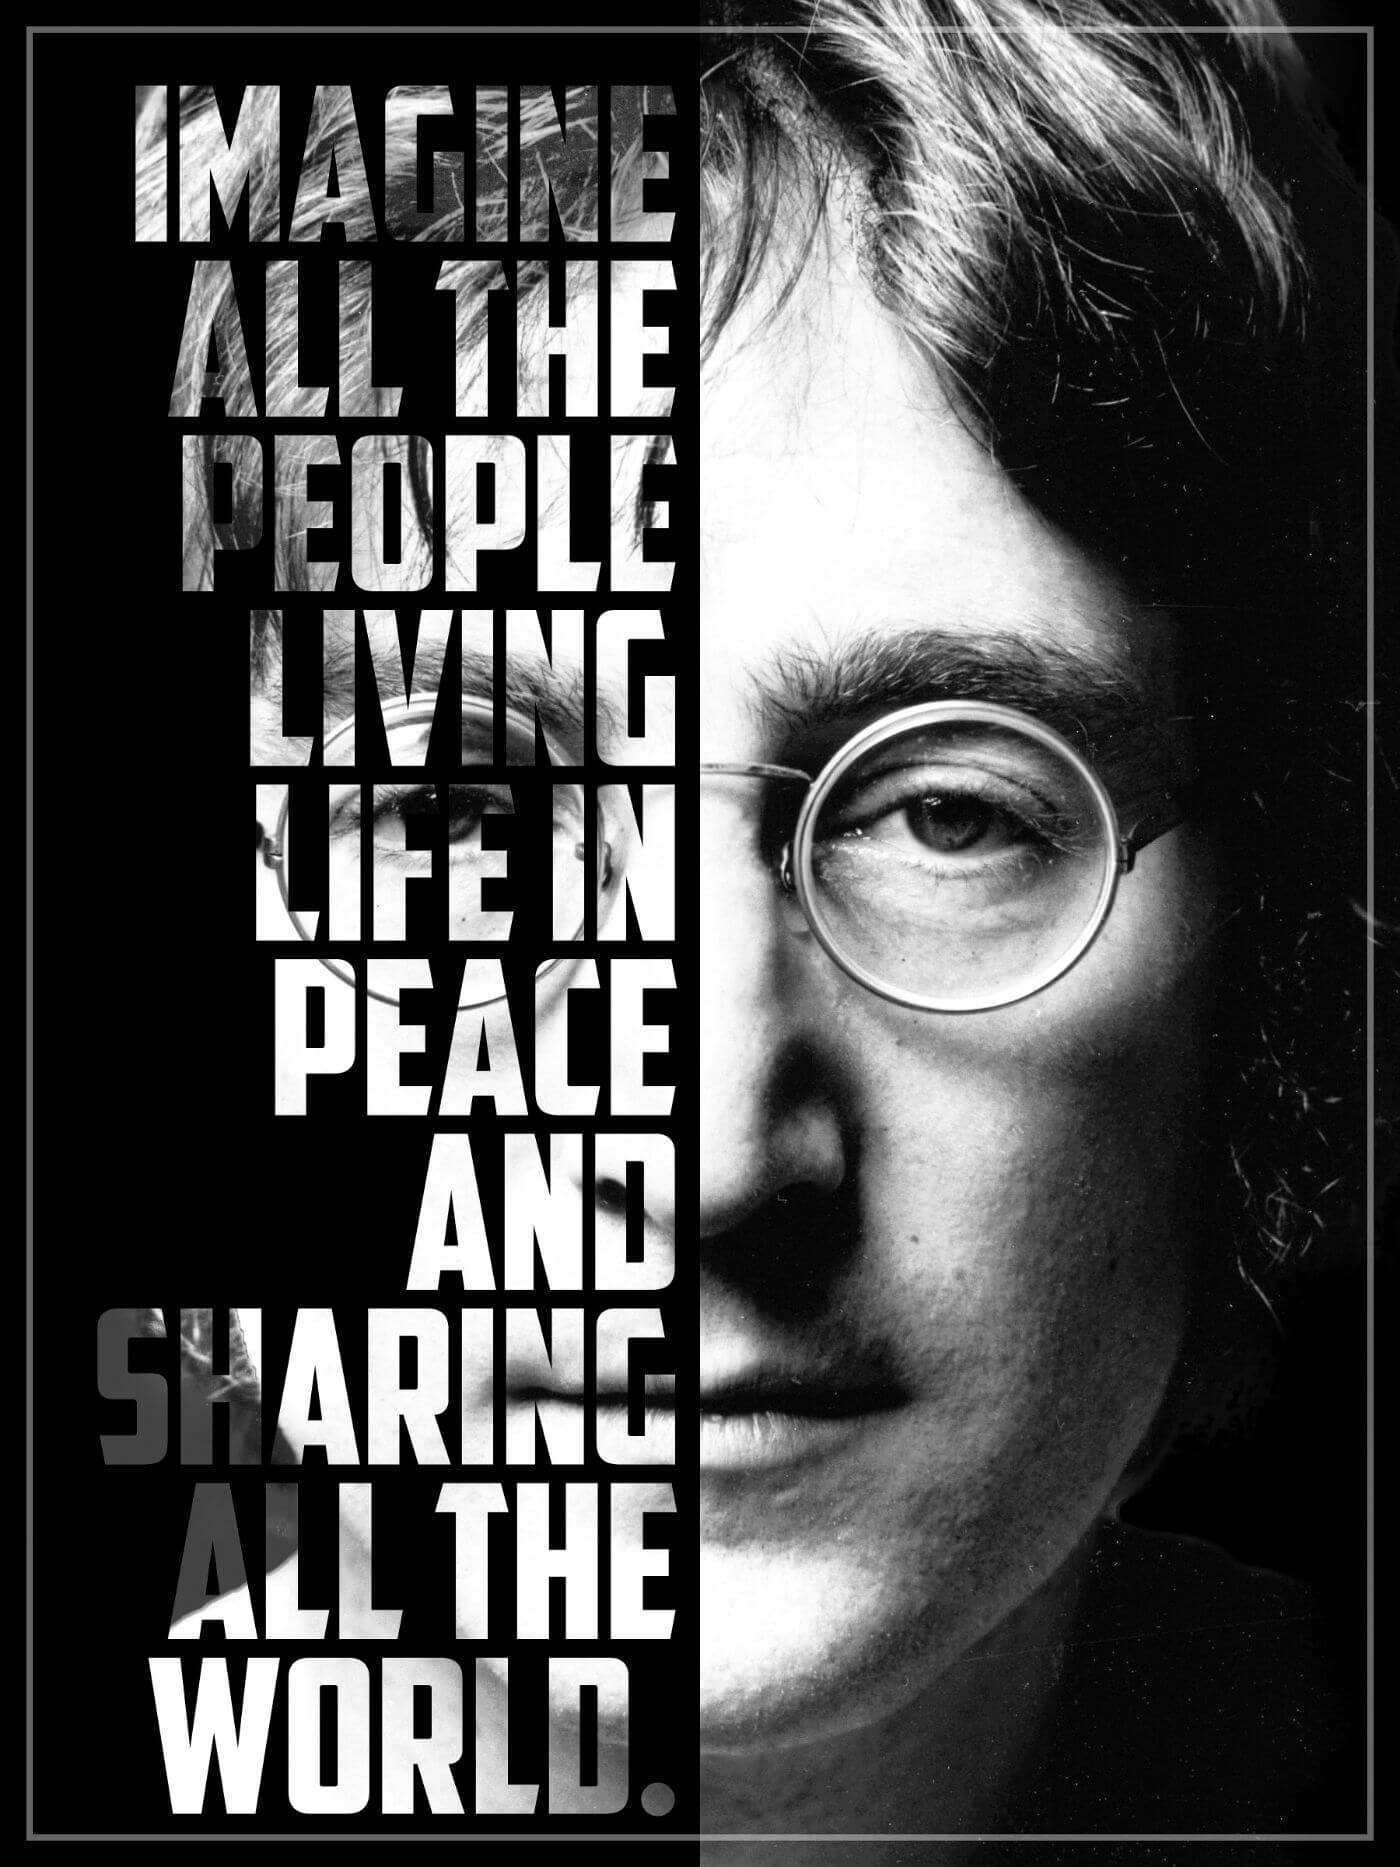 John Lennon Imagine Lyrics Graphic Poster Life Size Posters By Ralph Buy Posters Frames Canvas Digital Art Prints Small Compact Medium And Large Variants